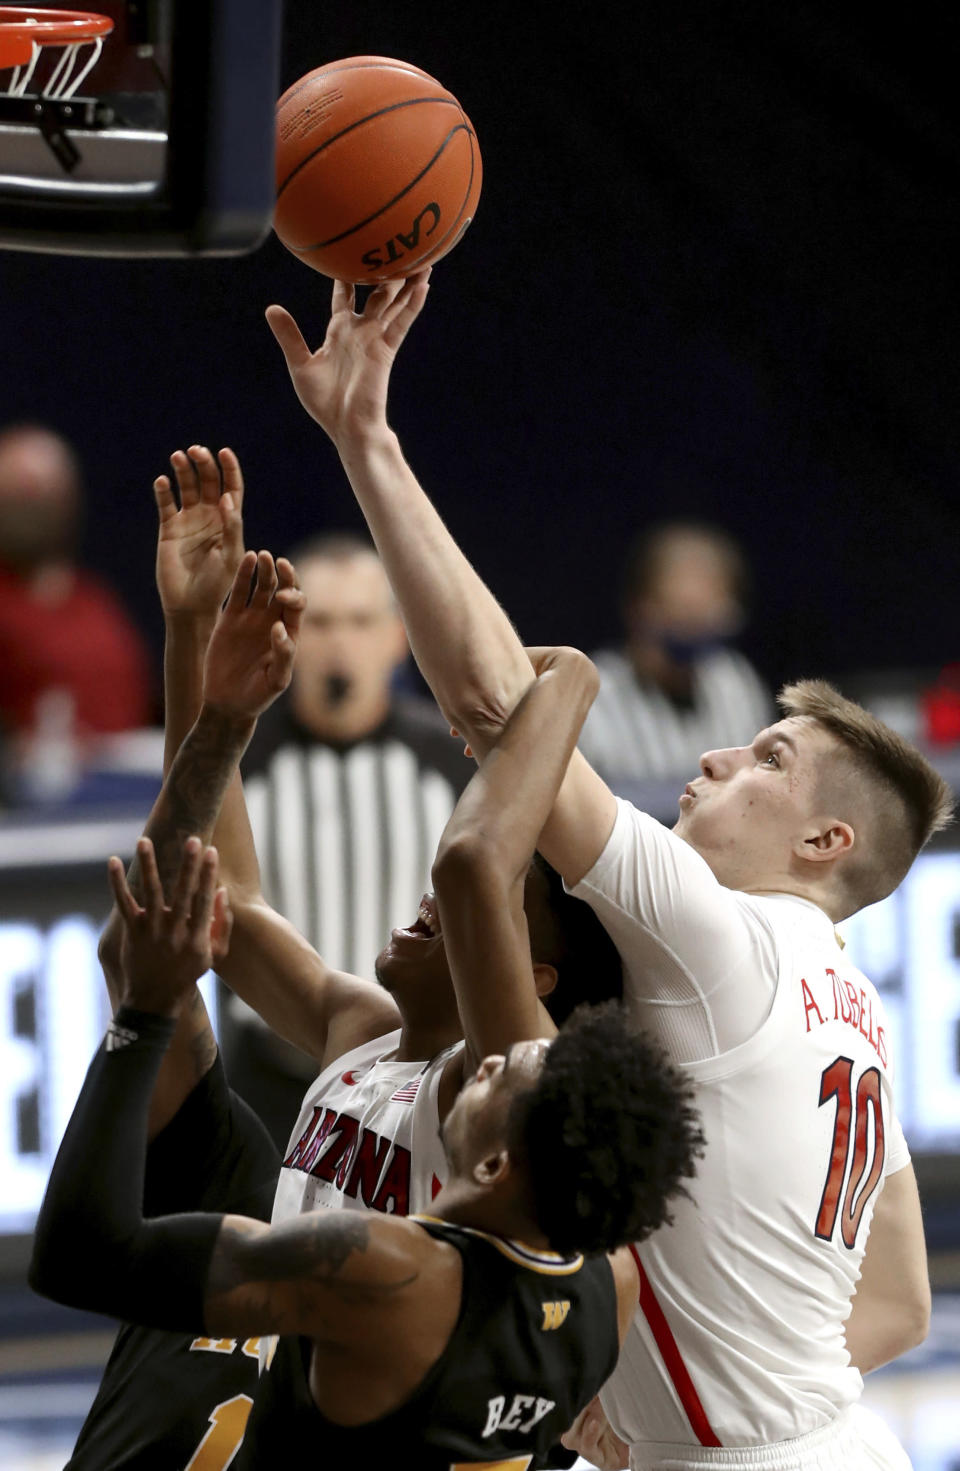 Arizona forward Azuolas Tubelis (10, right, gets tangled with teammate guard Dalen Terry (4) in front of Washington guard Jamal Bey (5) while trying to drag down a rebound in the first half of an NCAA college basketball game Saturday, Feb. 27, 2021, in Tucson, Ariz. (Kelly Presnell/Arizona Daily Star via AP)